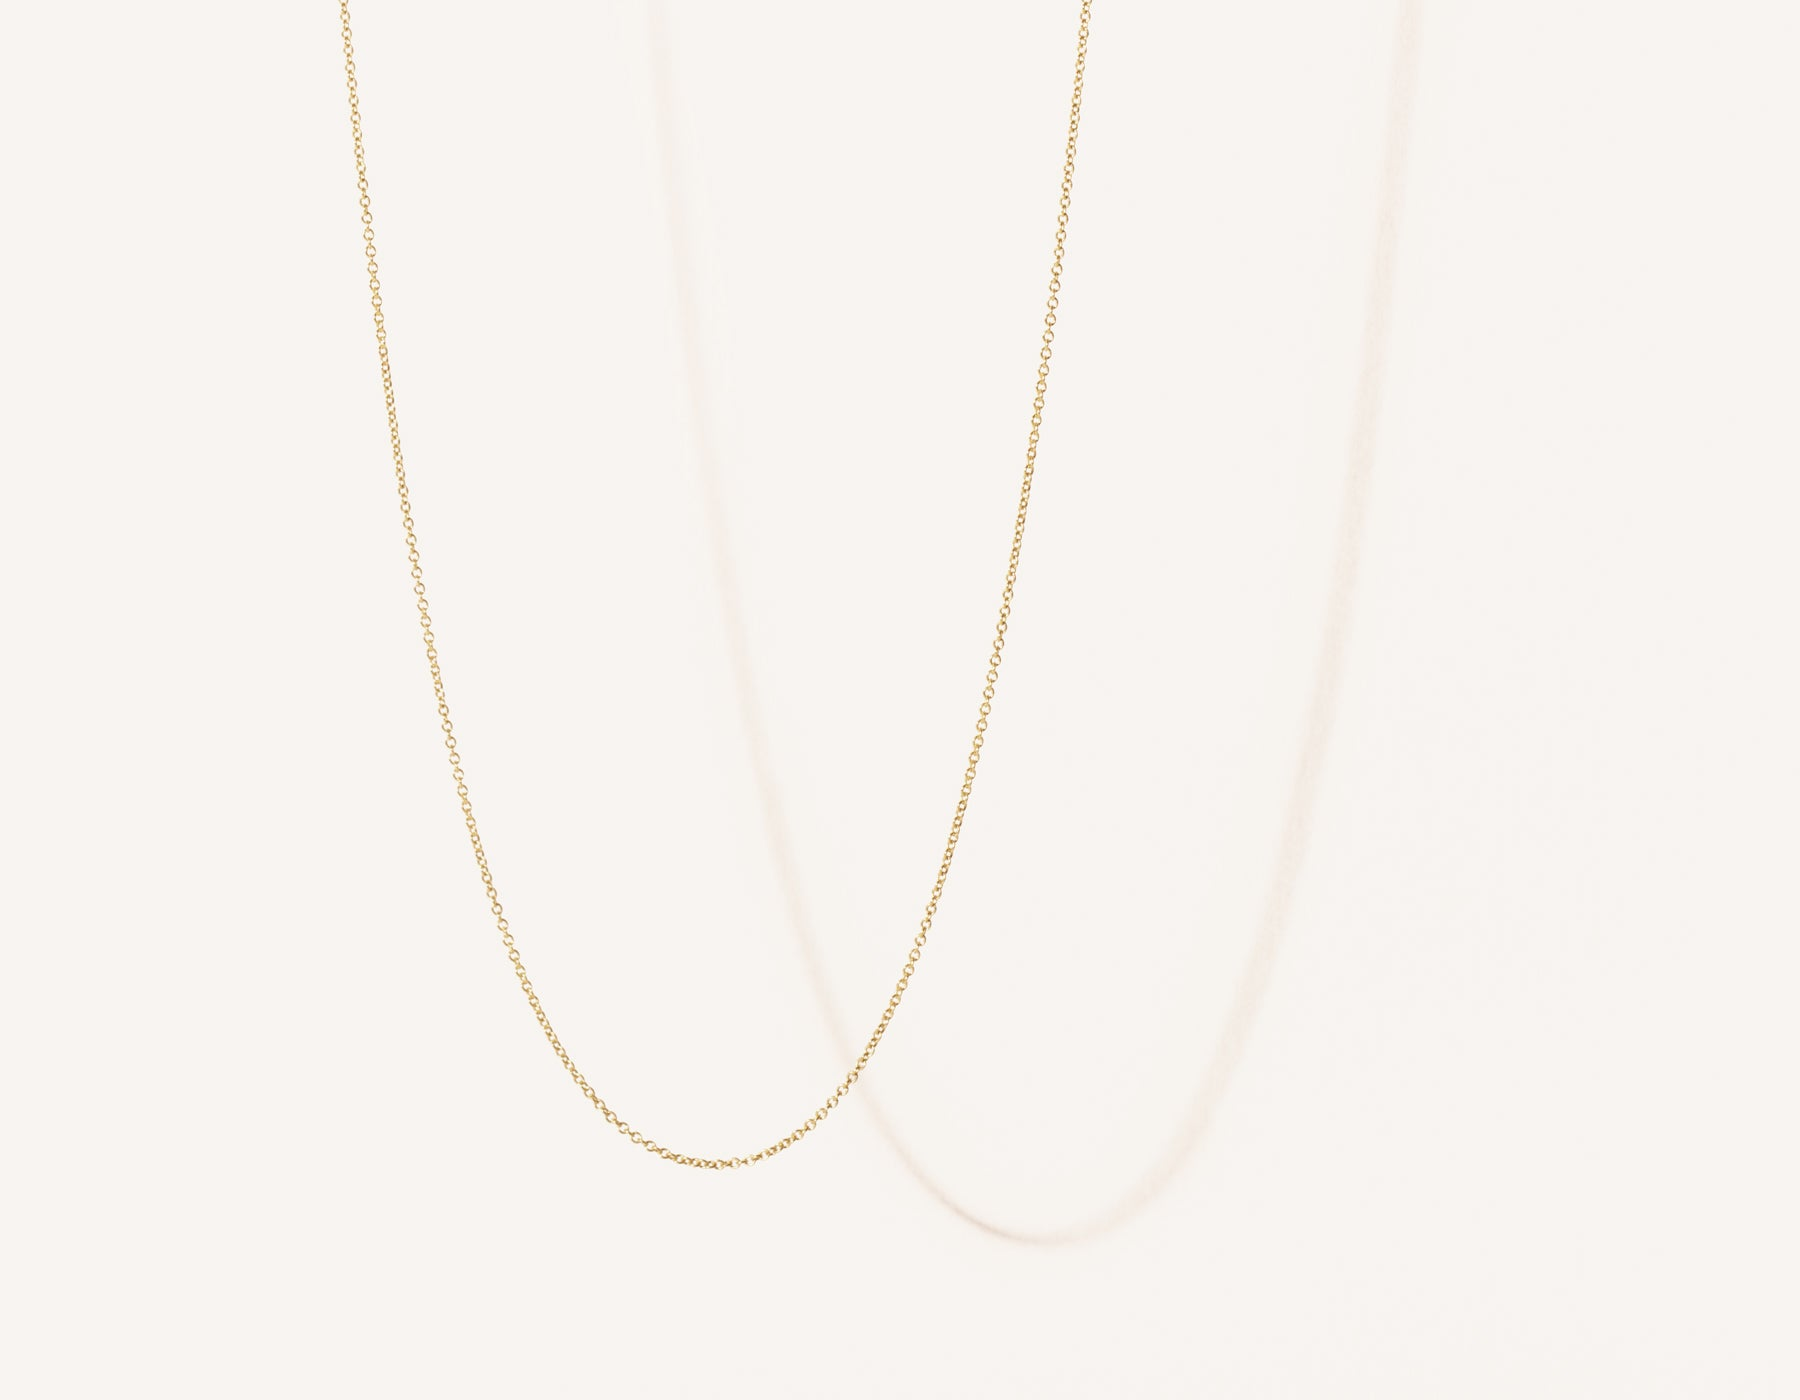 Modern minimalist thin Oval Link Chain necklace in 14k solid gold by Vrai and Oro jewelry, 14K Yellow Gold